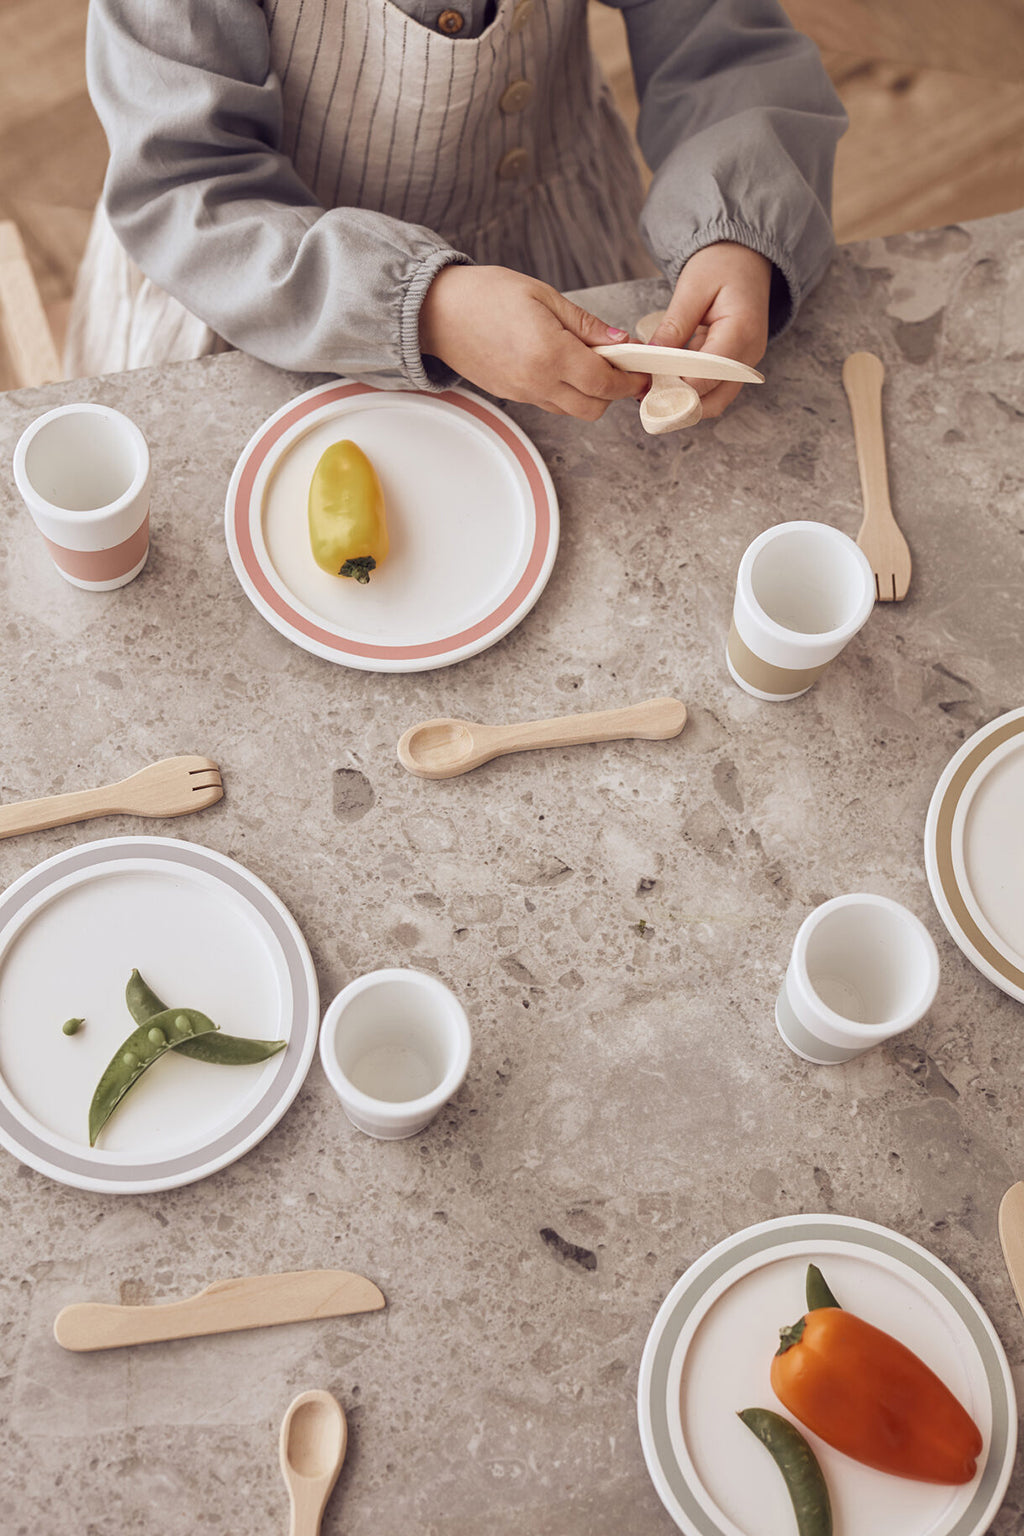 Kids Concept Tableware Play Set - 4